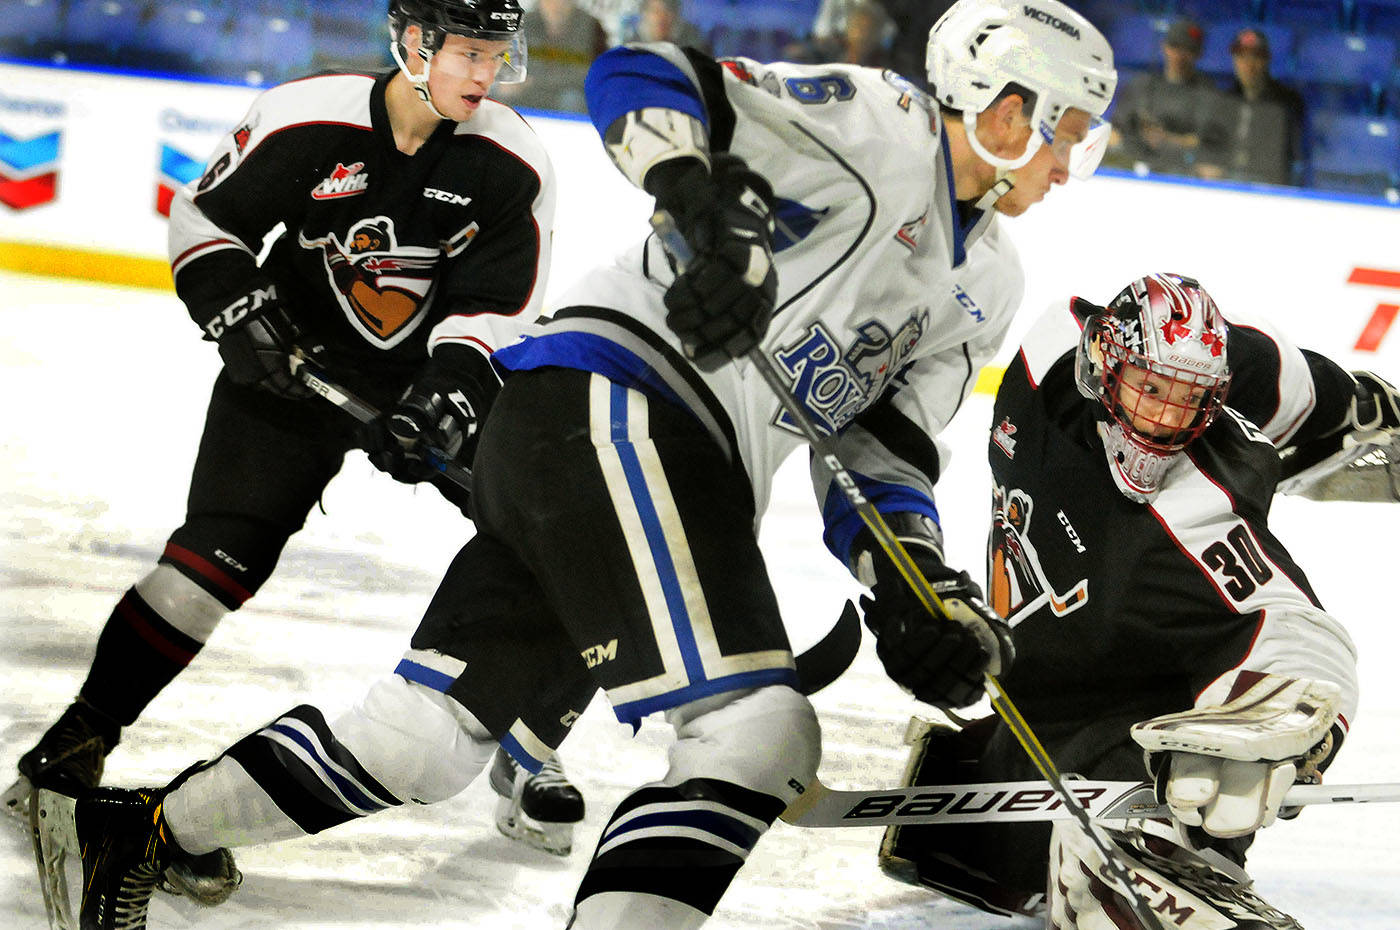 Vancouver Giants goaltender David Tendeck made 21 saves on Friday night in his team's 3-1 win over the visiting Victoria Royals. Tendeck followed that up with a 40-save shutout performance on Sunday over Prince George. On Monday, Tendeck was named the Western Hockey League's goalie of the week.                                 Troy Landreville Langley Times